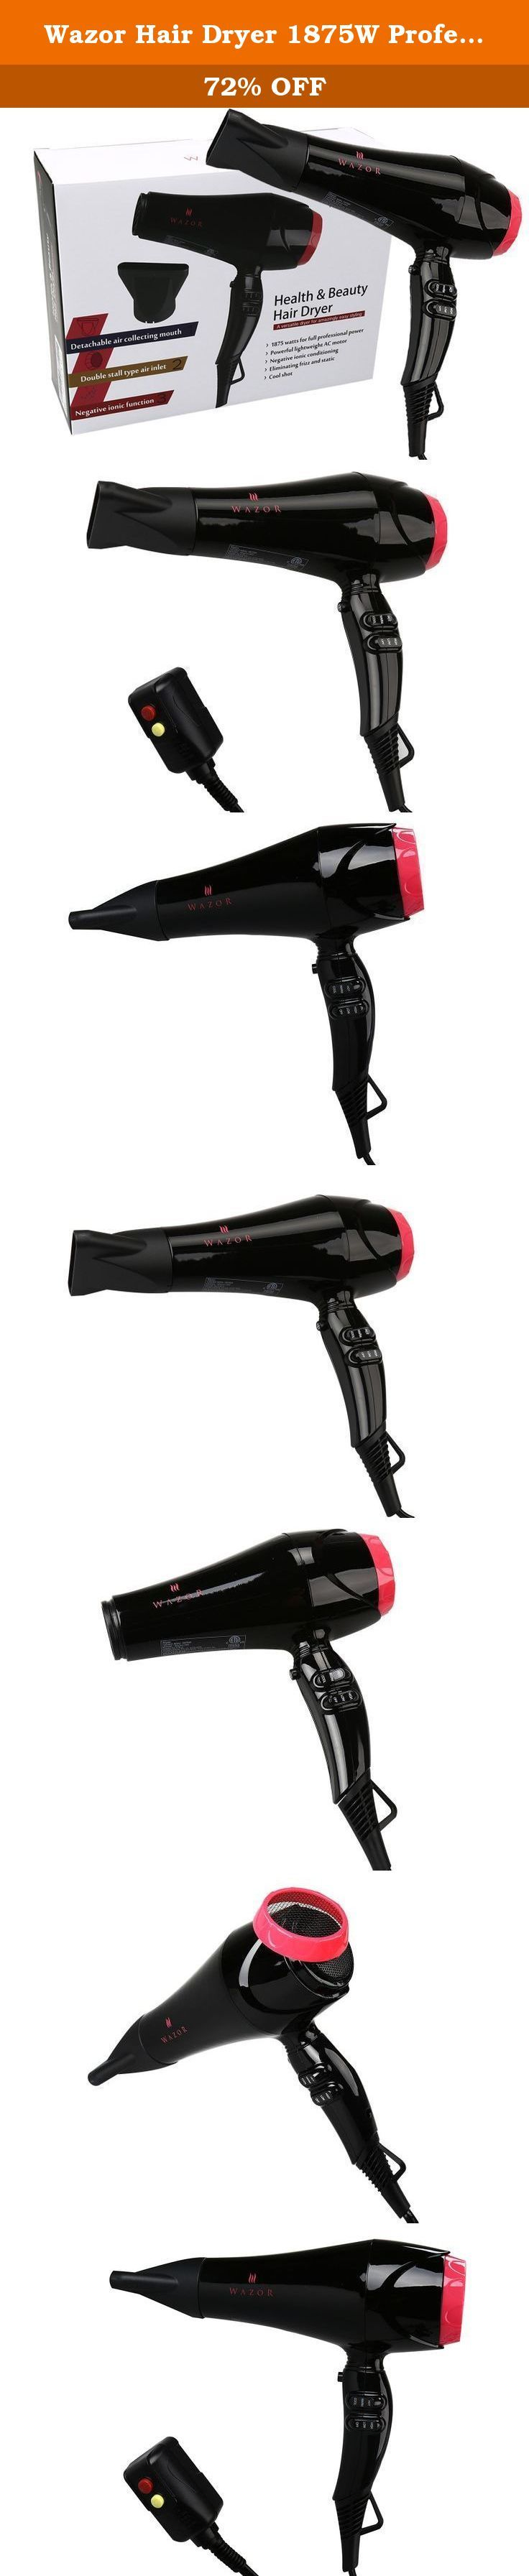 34 Best Hair Dryers Styling Tools Amp Appliances Hair Care